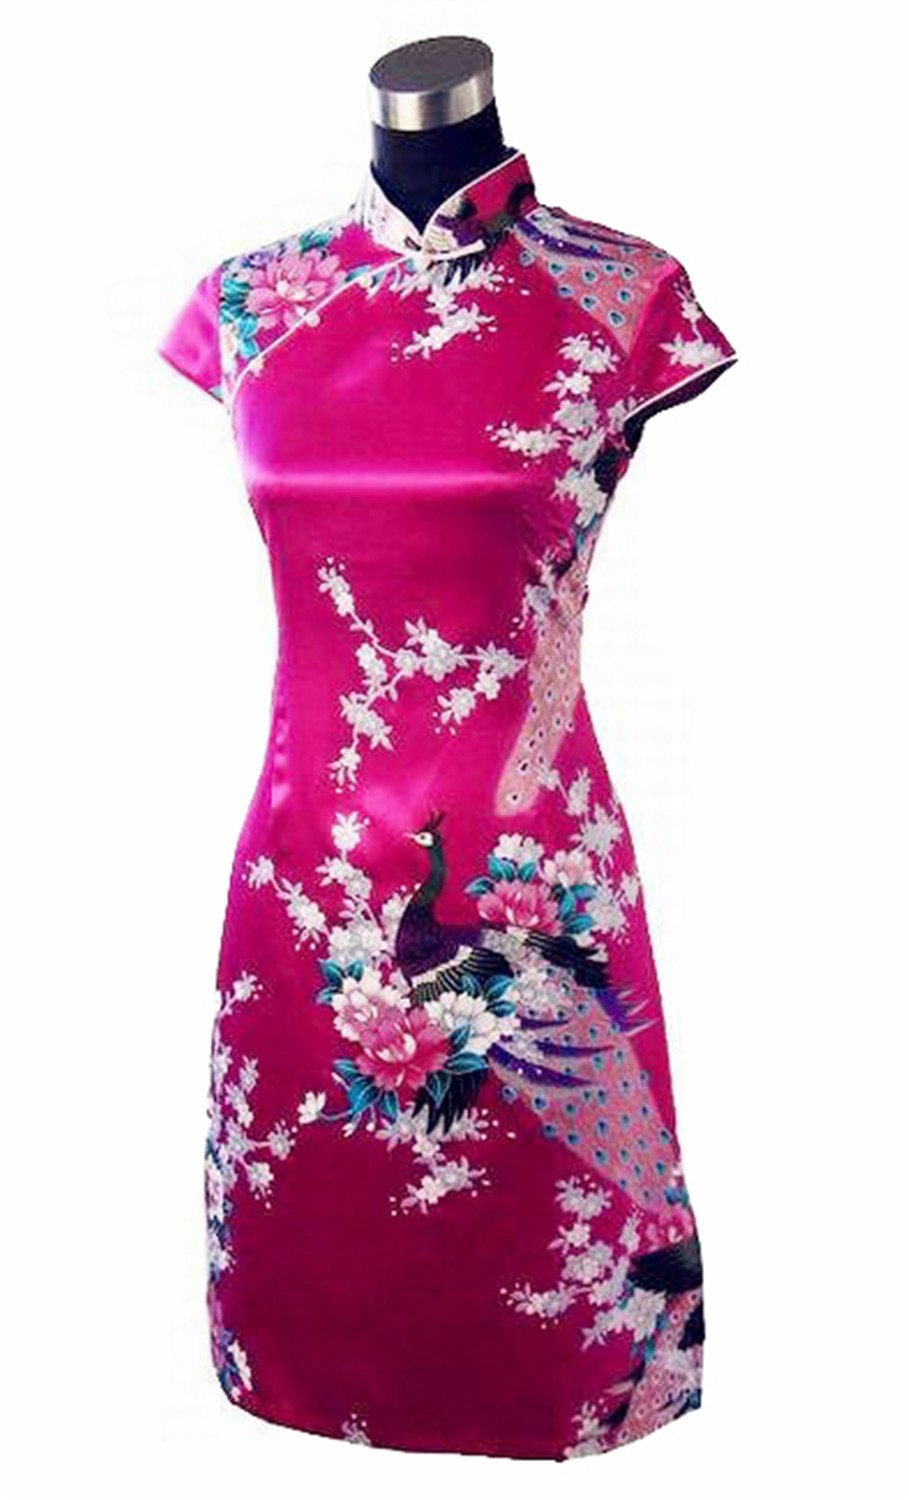 Coac3 Blue Chinese Women's Silk Rayou Halter Cheongsam Mini Qipao Dress Peafowl Size S M L XL XXL Hot Pink S